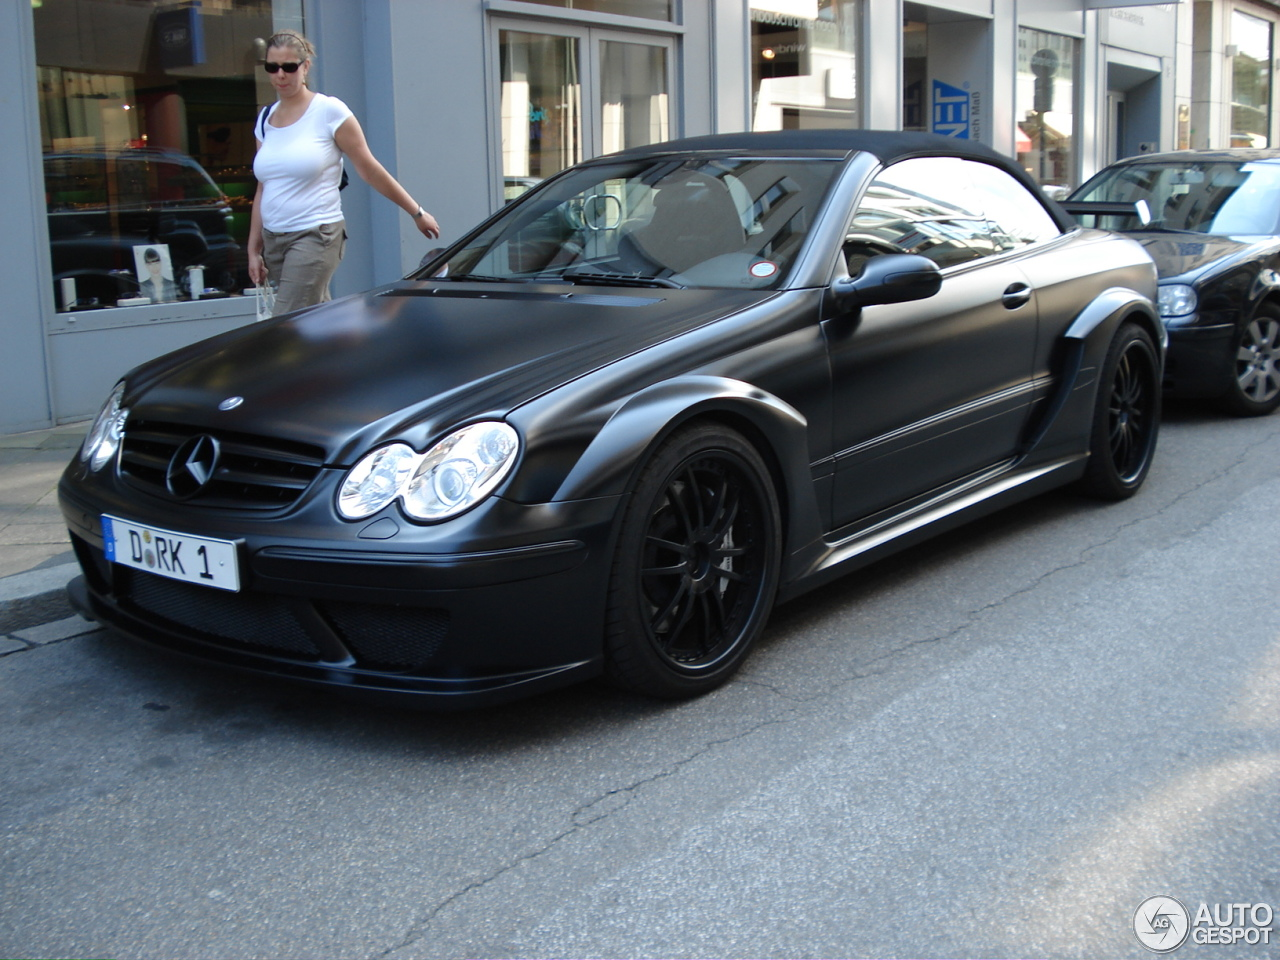 mercedes benz clk dtm amg cabriolet 31 october 2012 autogespot. Black Bedroom Furniture Sets. Home Design Ideas